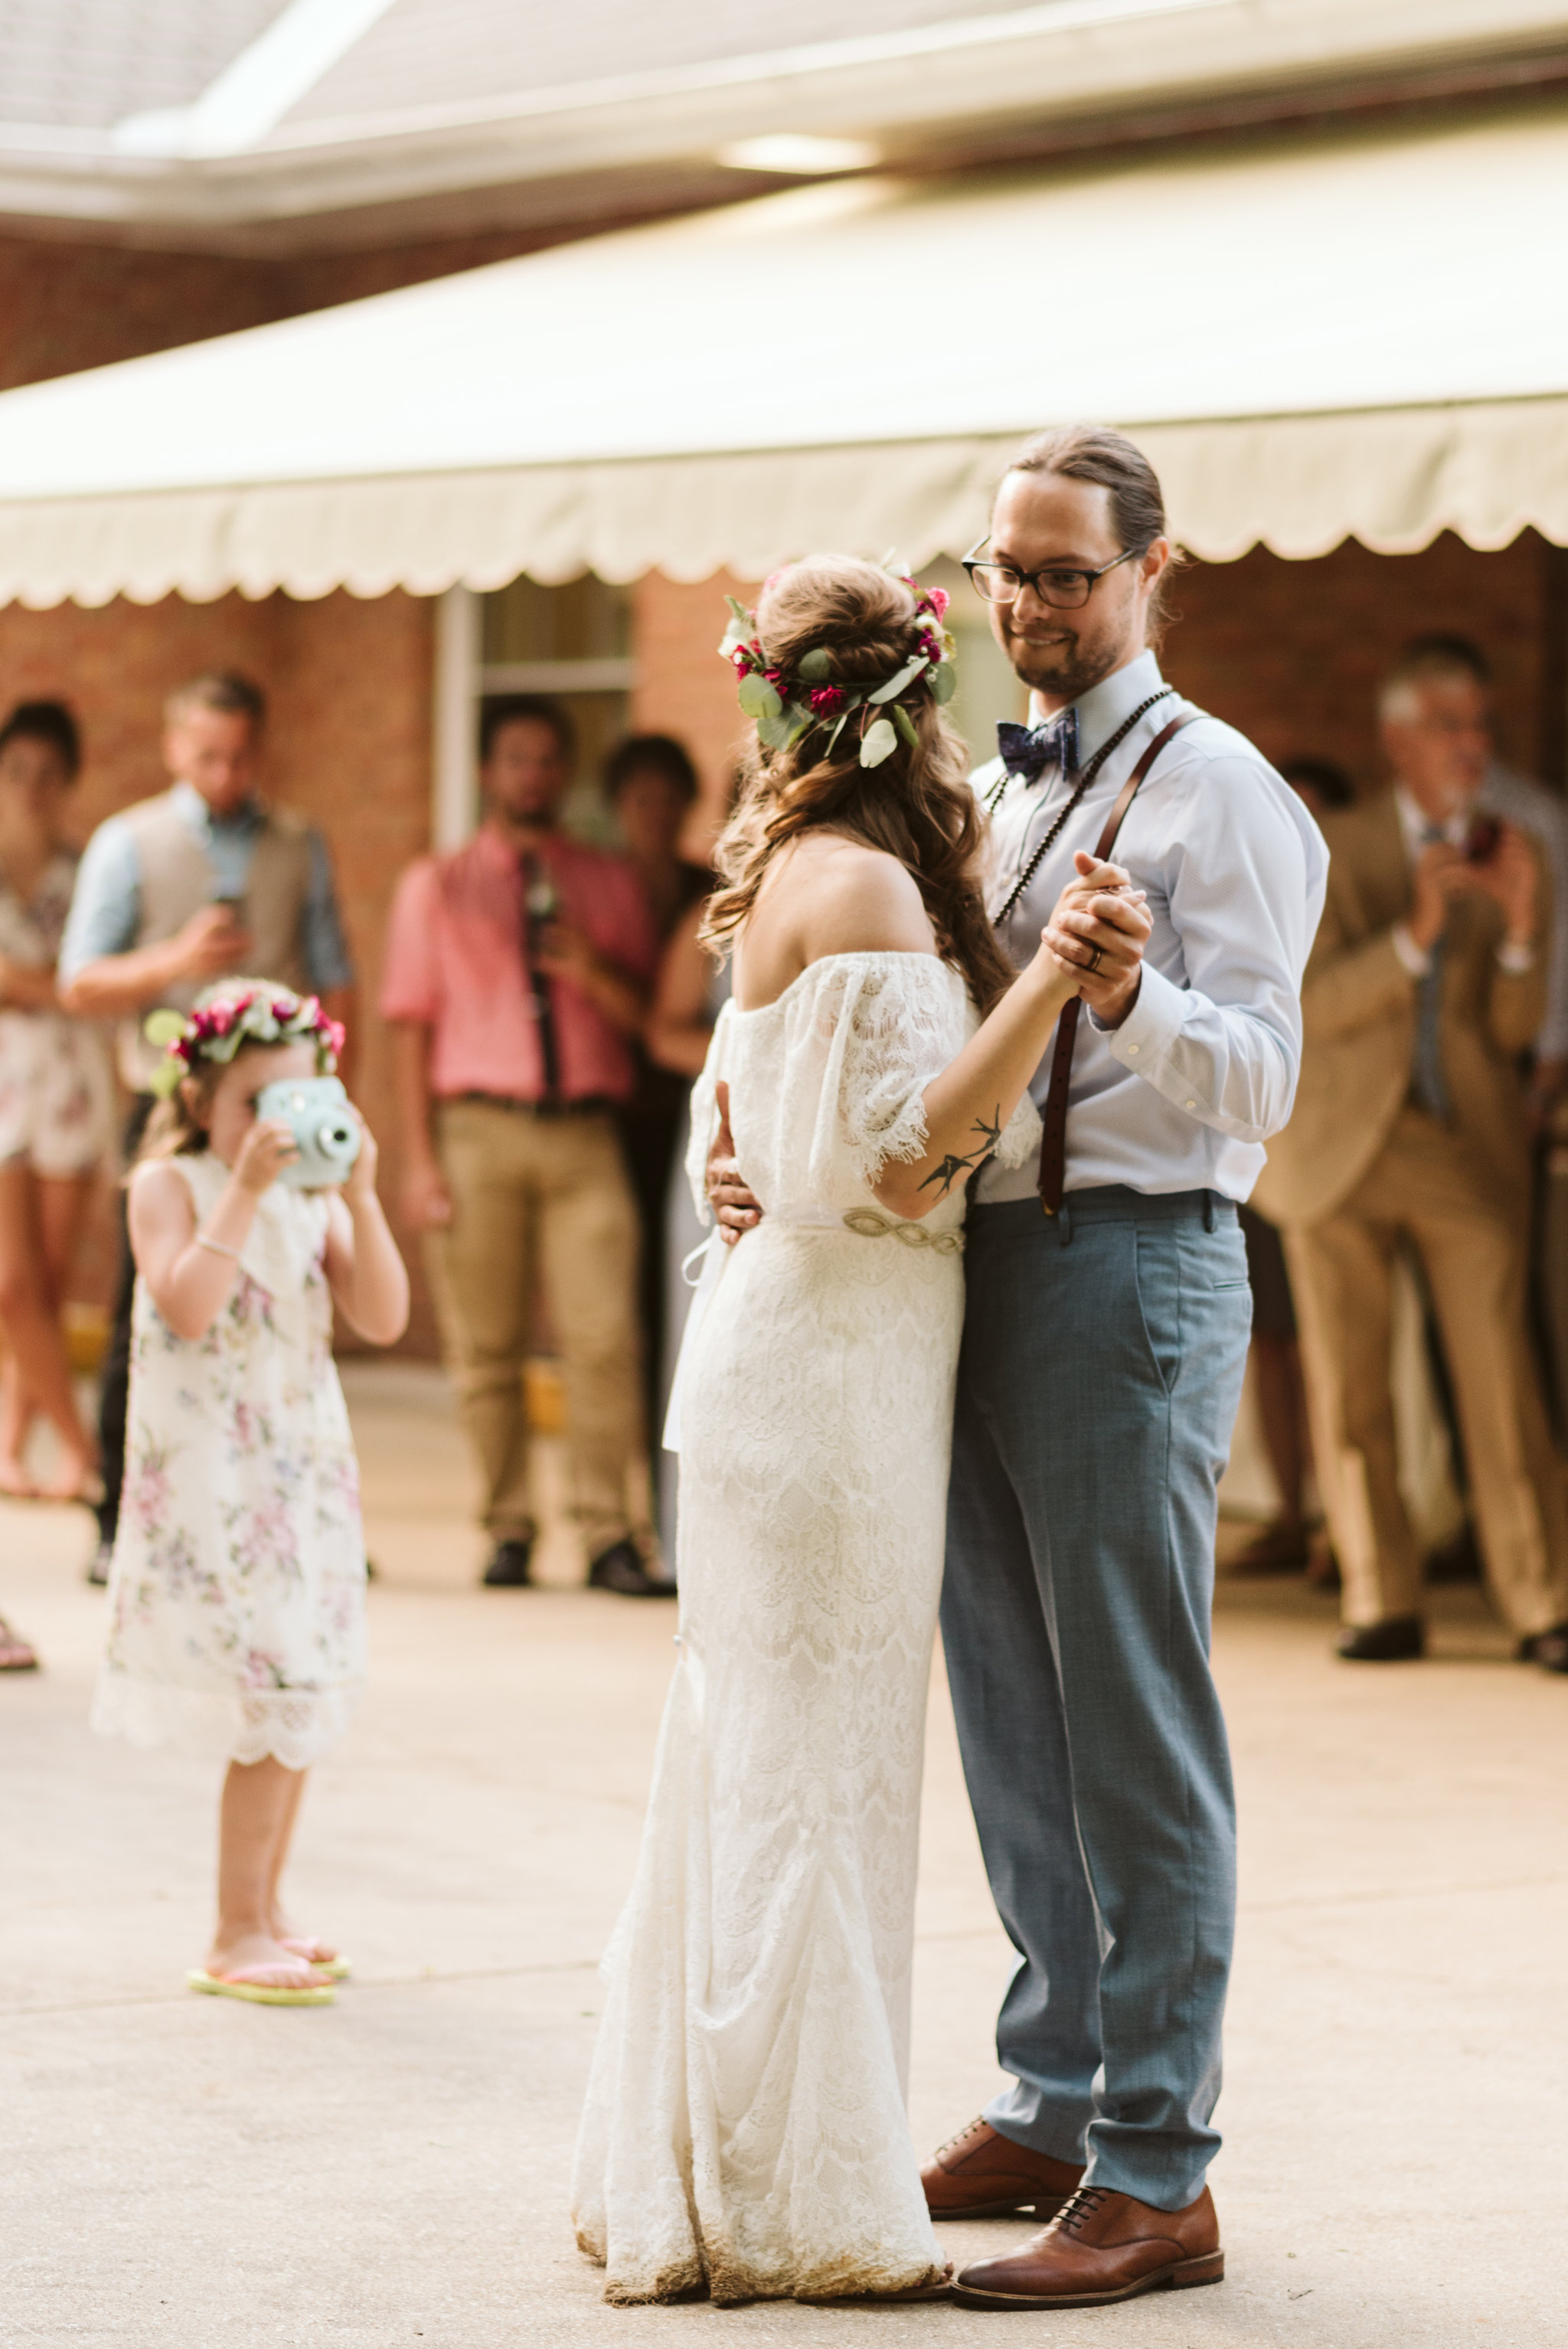 Annapolis, Quaker Wedding, Maryland Wedding Photographer, Intimate, Small Wedding, Vintage, DIY, Bride and Groom First Dance, Child with Polaroid